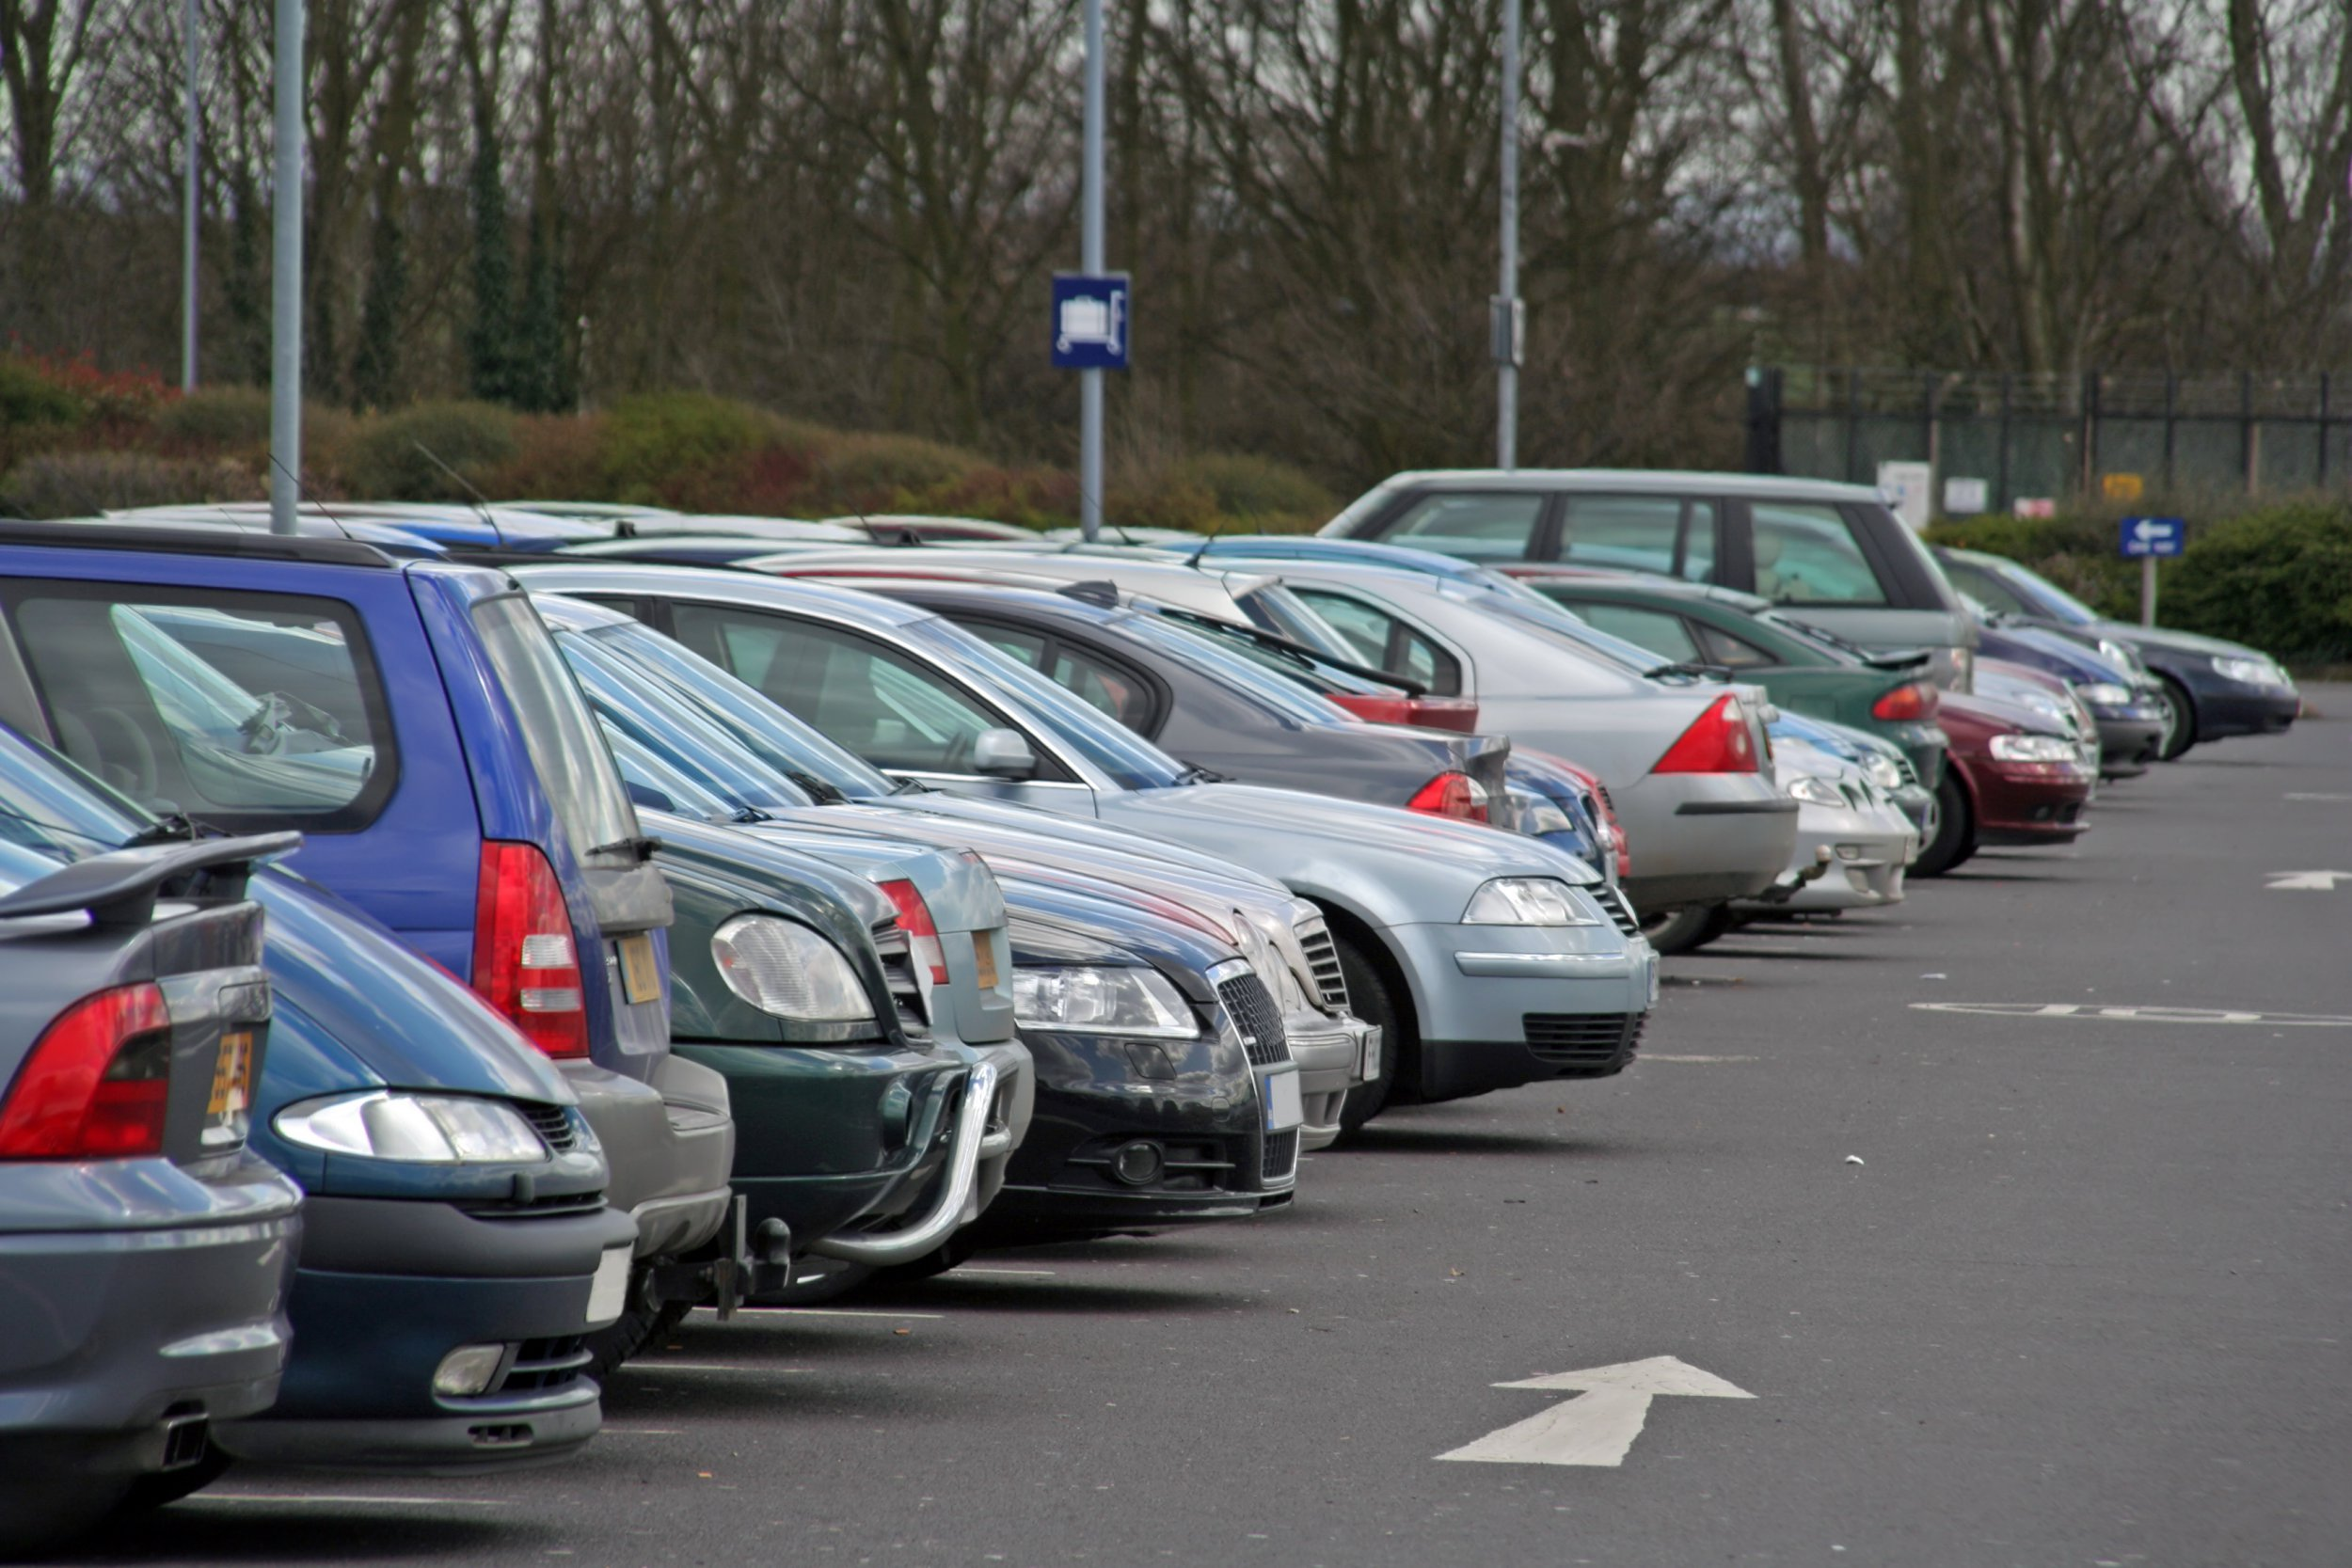 Commuters face paying ?1,000 to drive to work Car park in winter. Other pics of parked cars include...